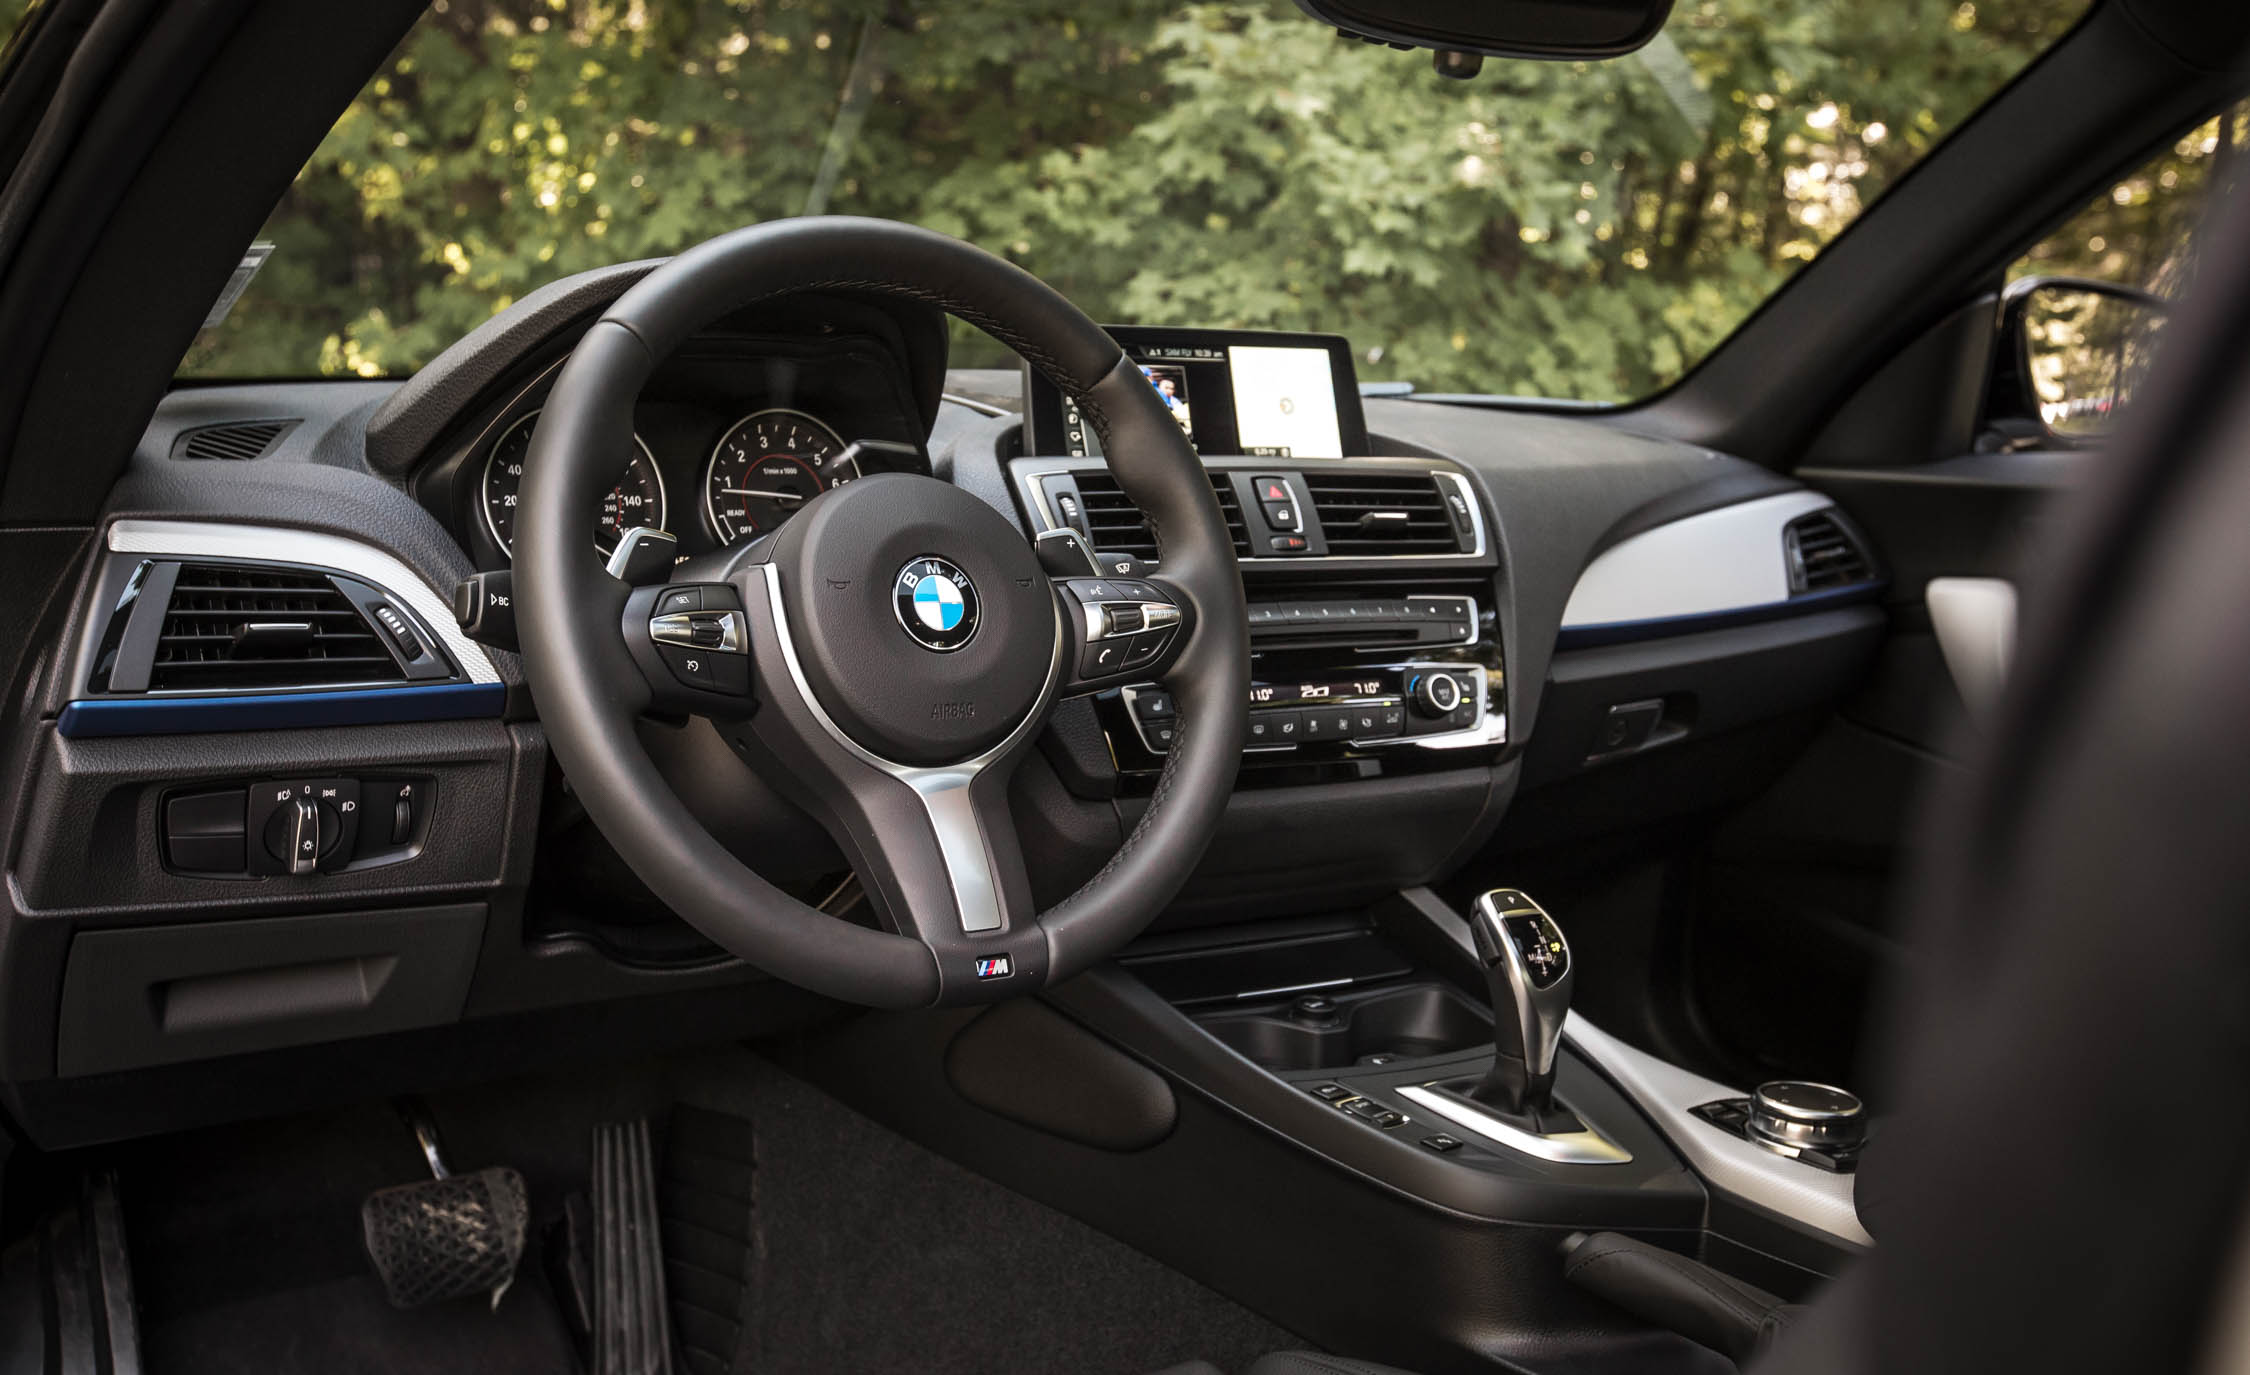 2017 BMW M240i Coupe Automatic Interior View Driver Steering (Photo 33 of 36)